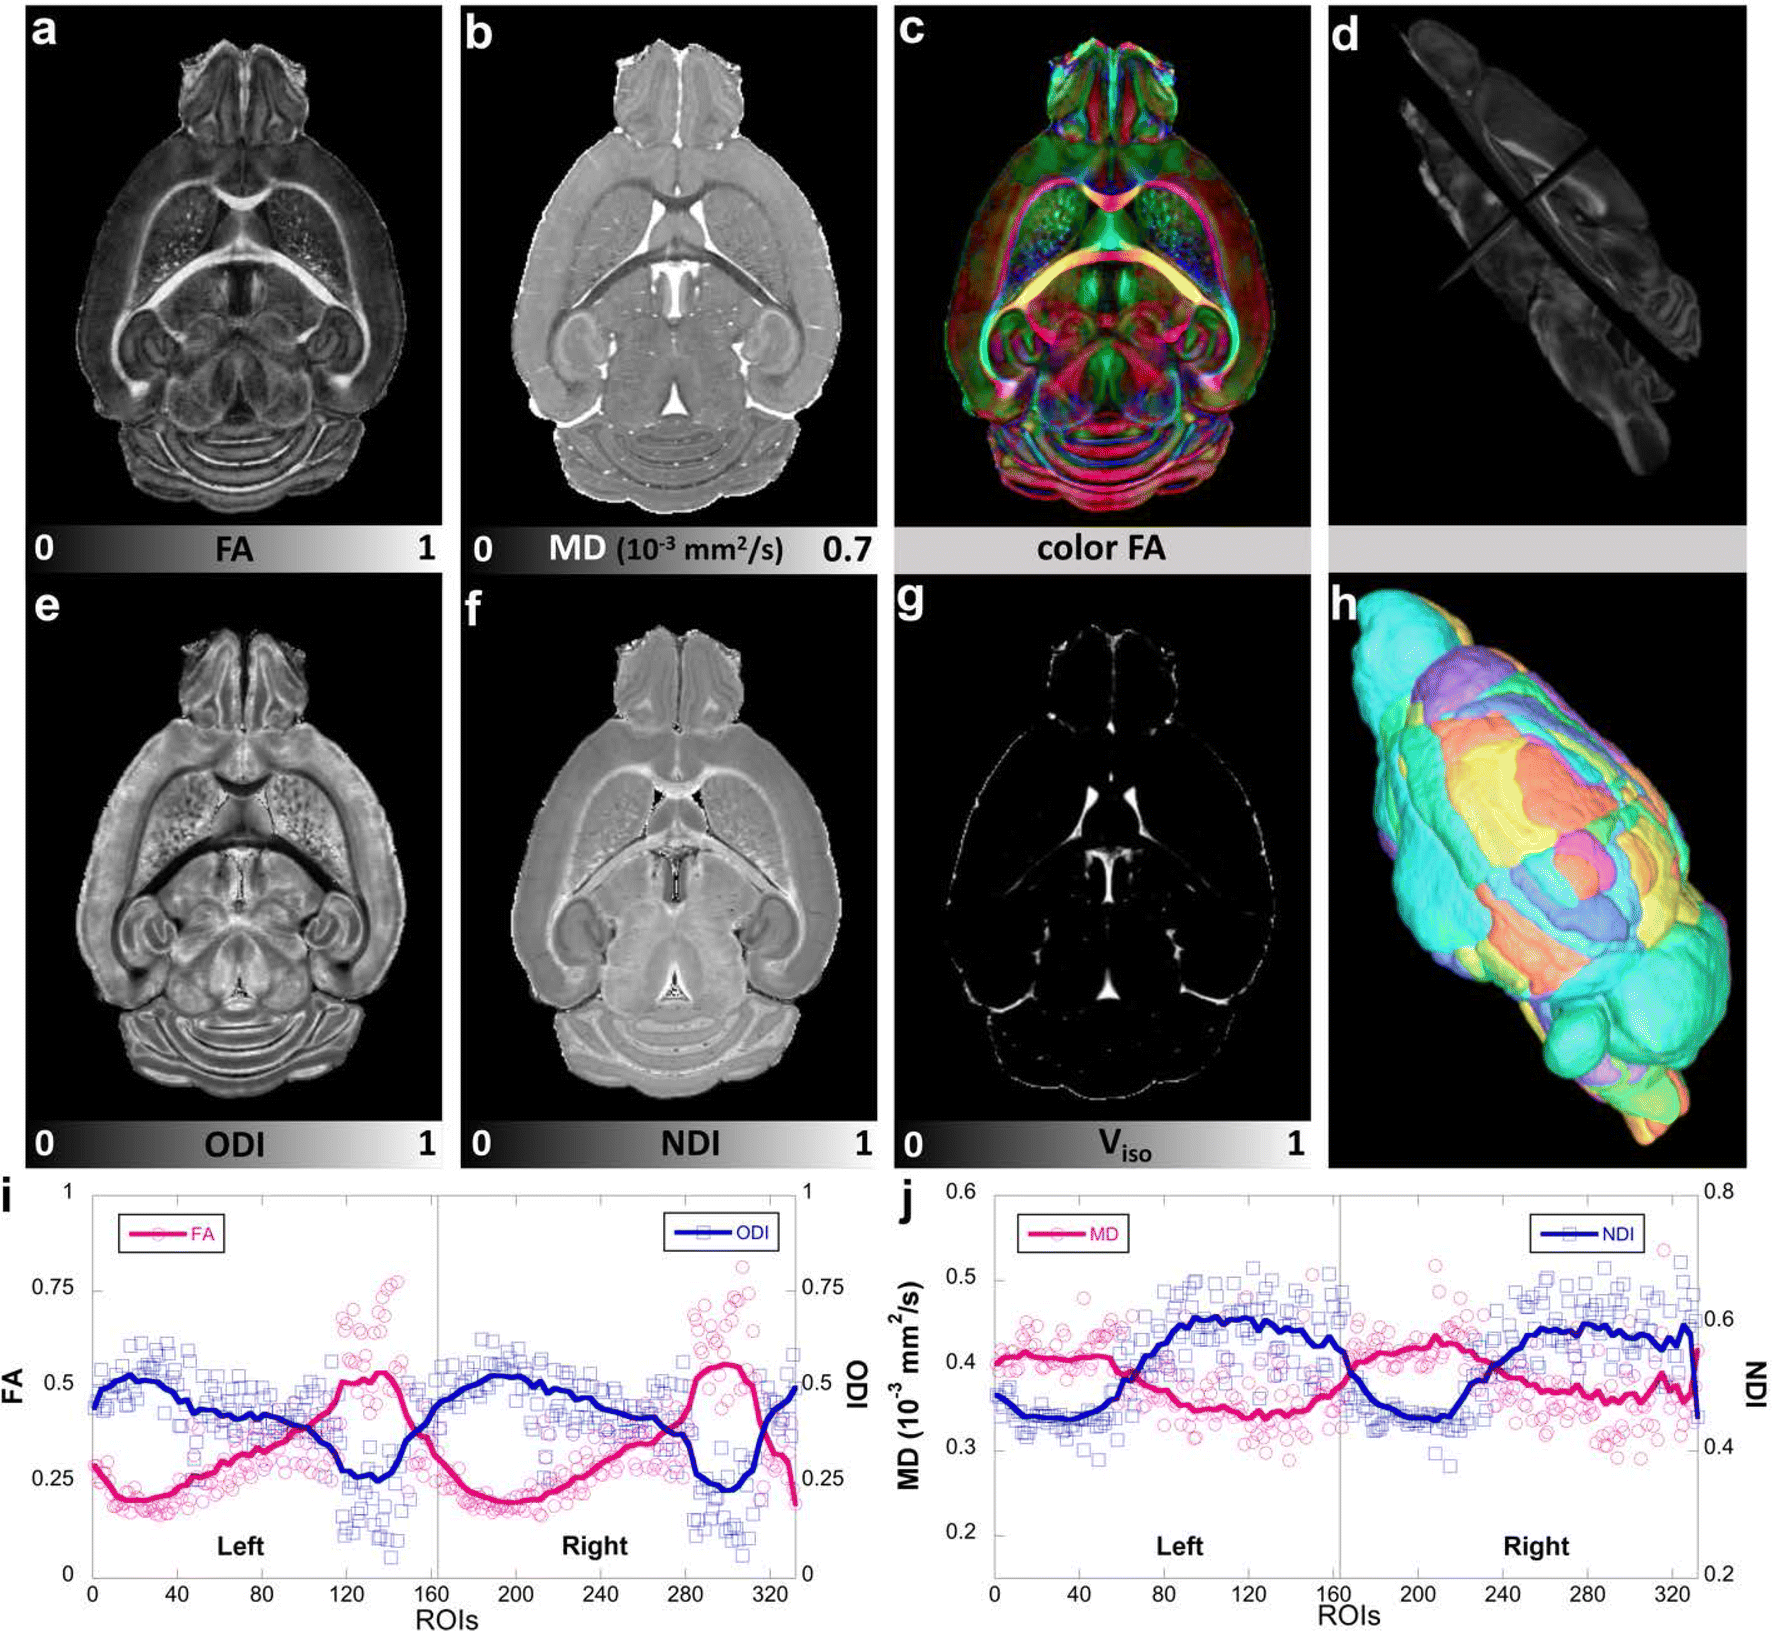 Neurite orientation dispersion and density imaging of mouse